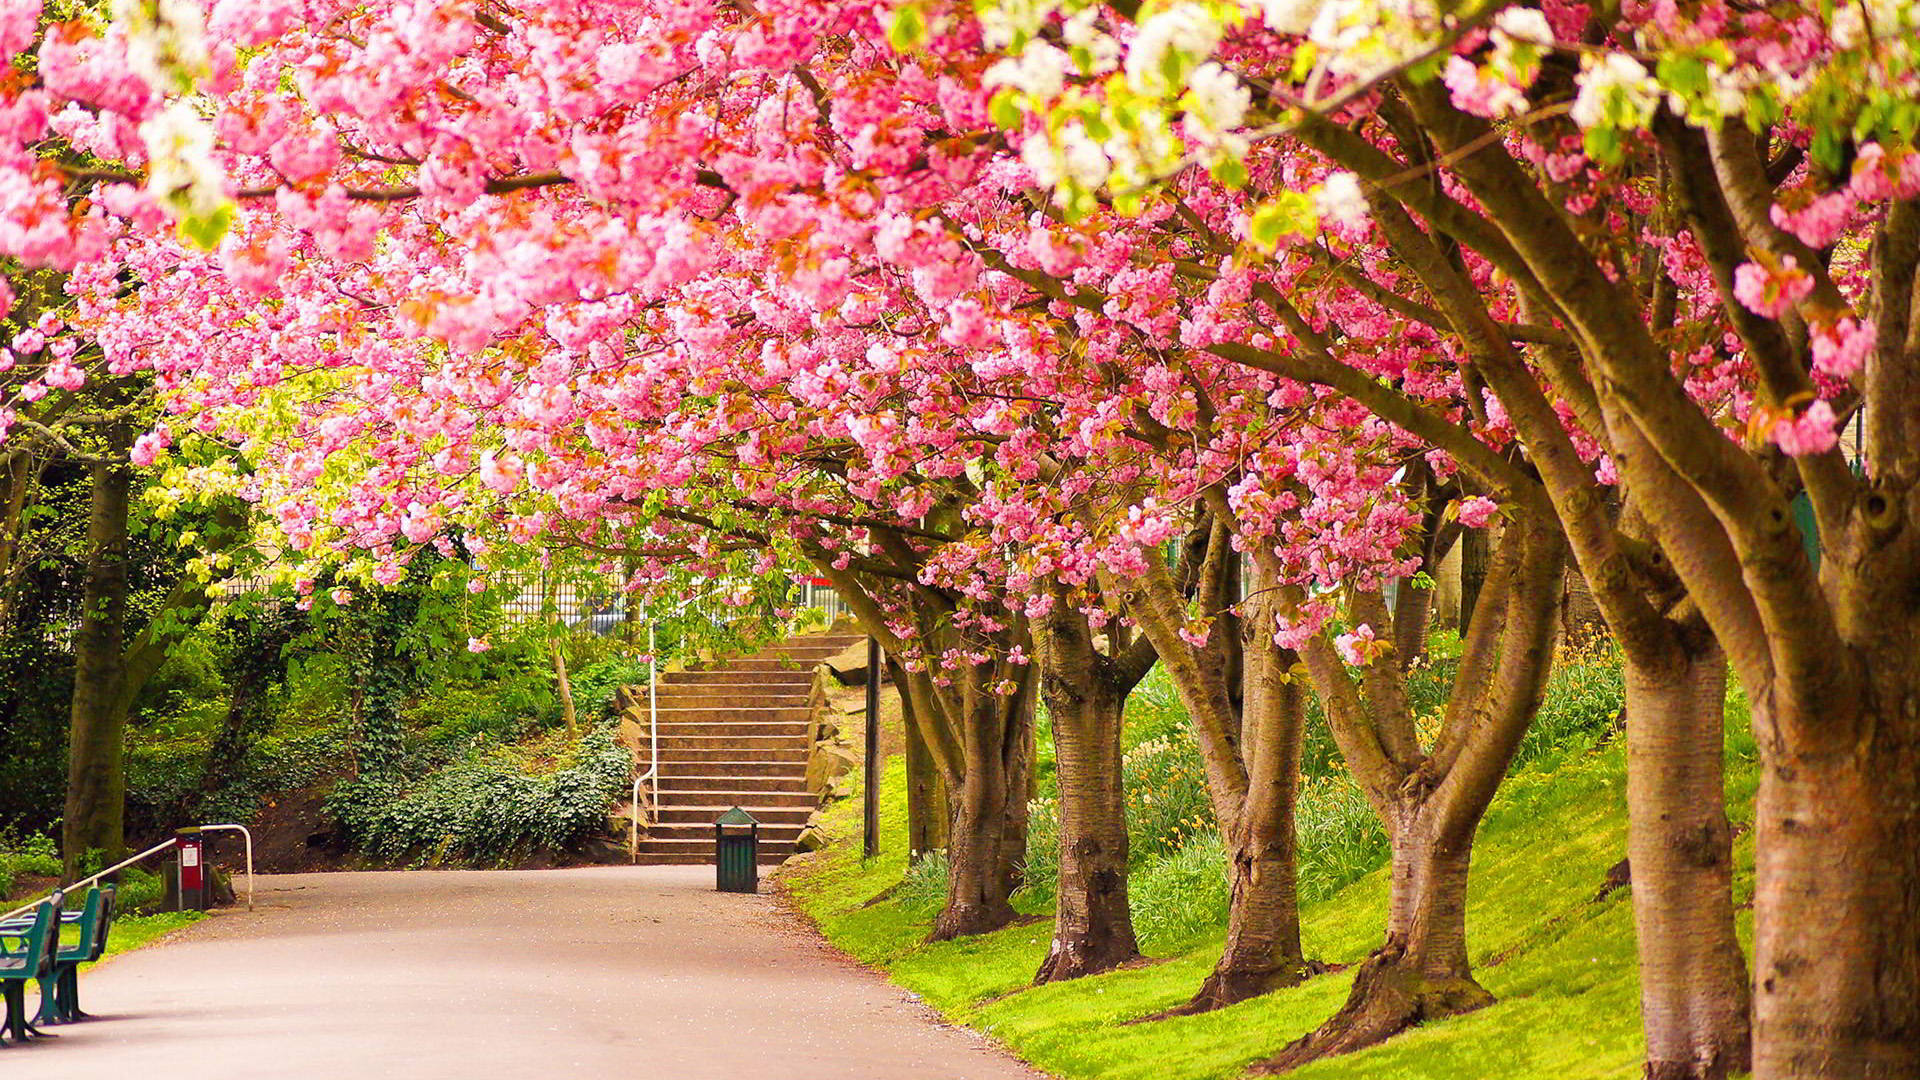 Nature Flower tree wallpaper